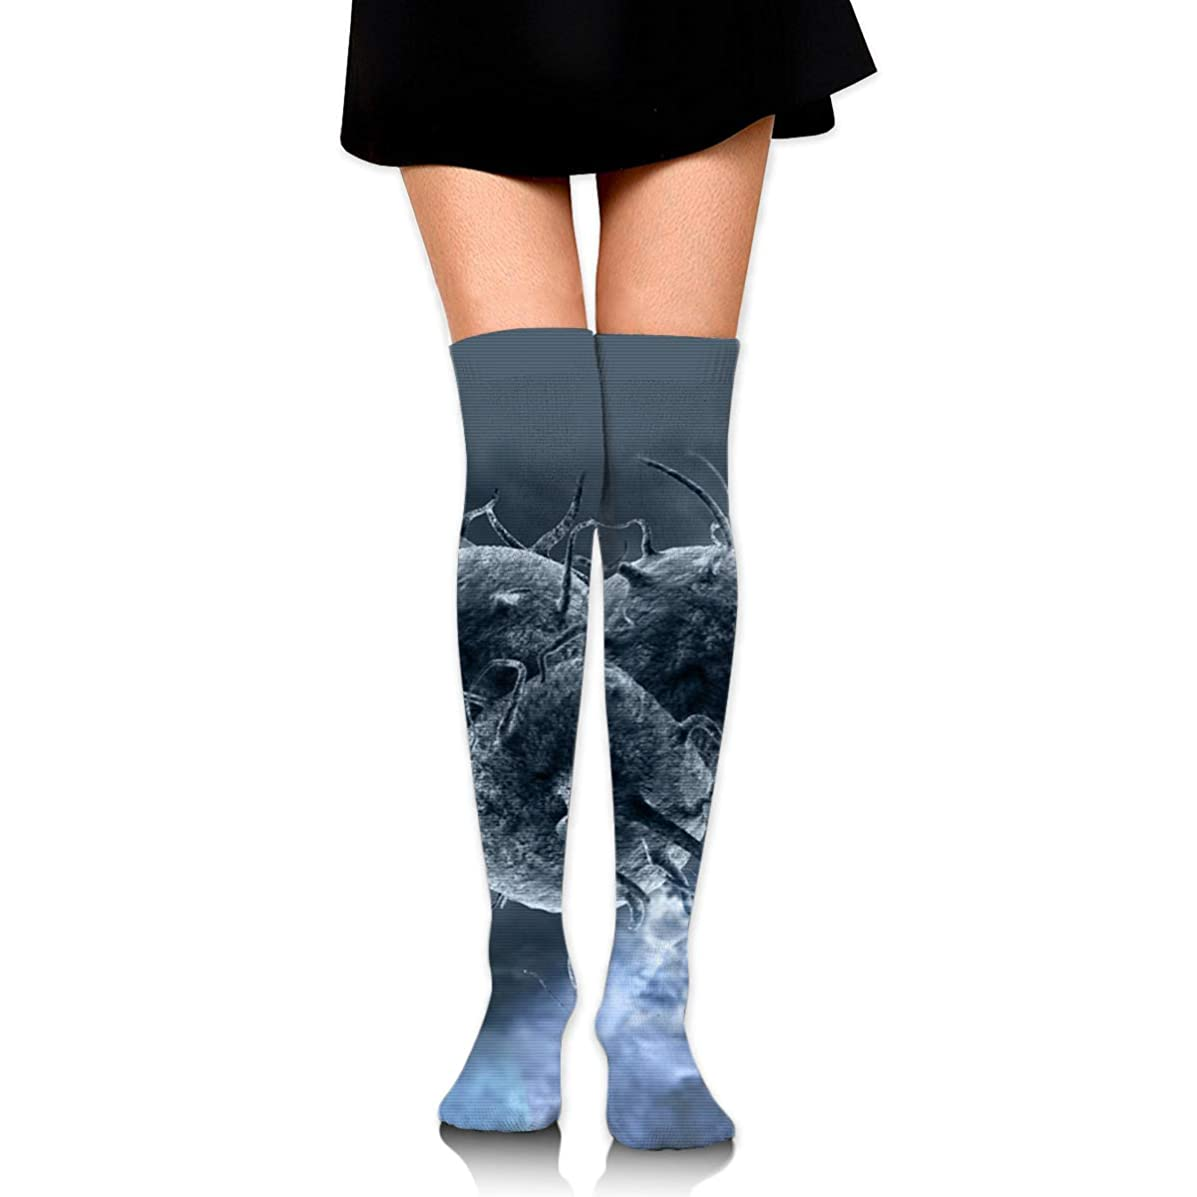 Women Crew Socks Thigh High Knee Microorganism Long Tube Dress Legging Athletic Compression Stocking